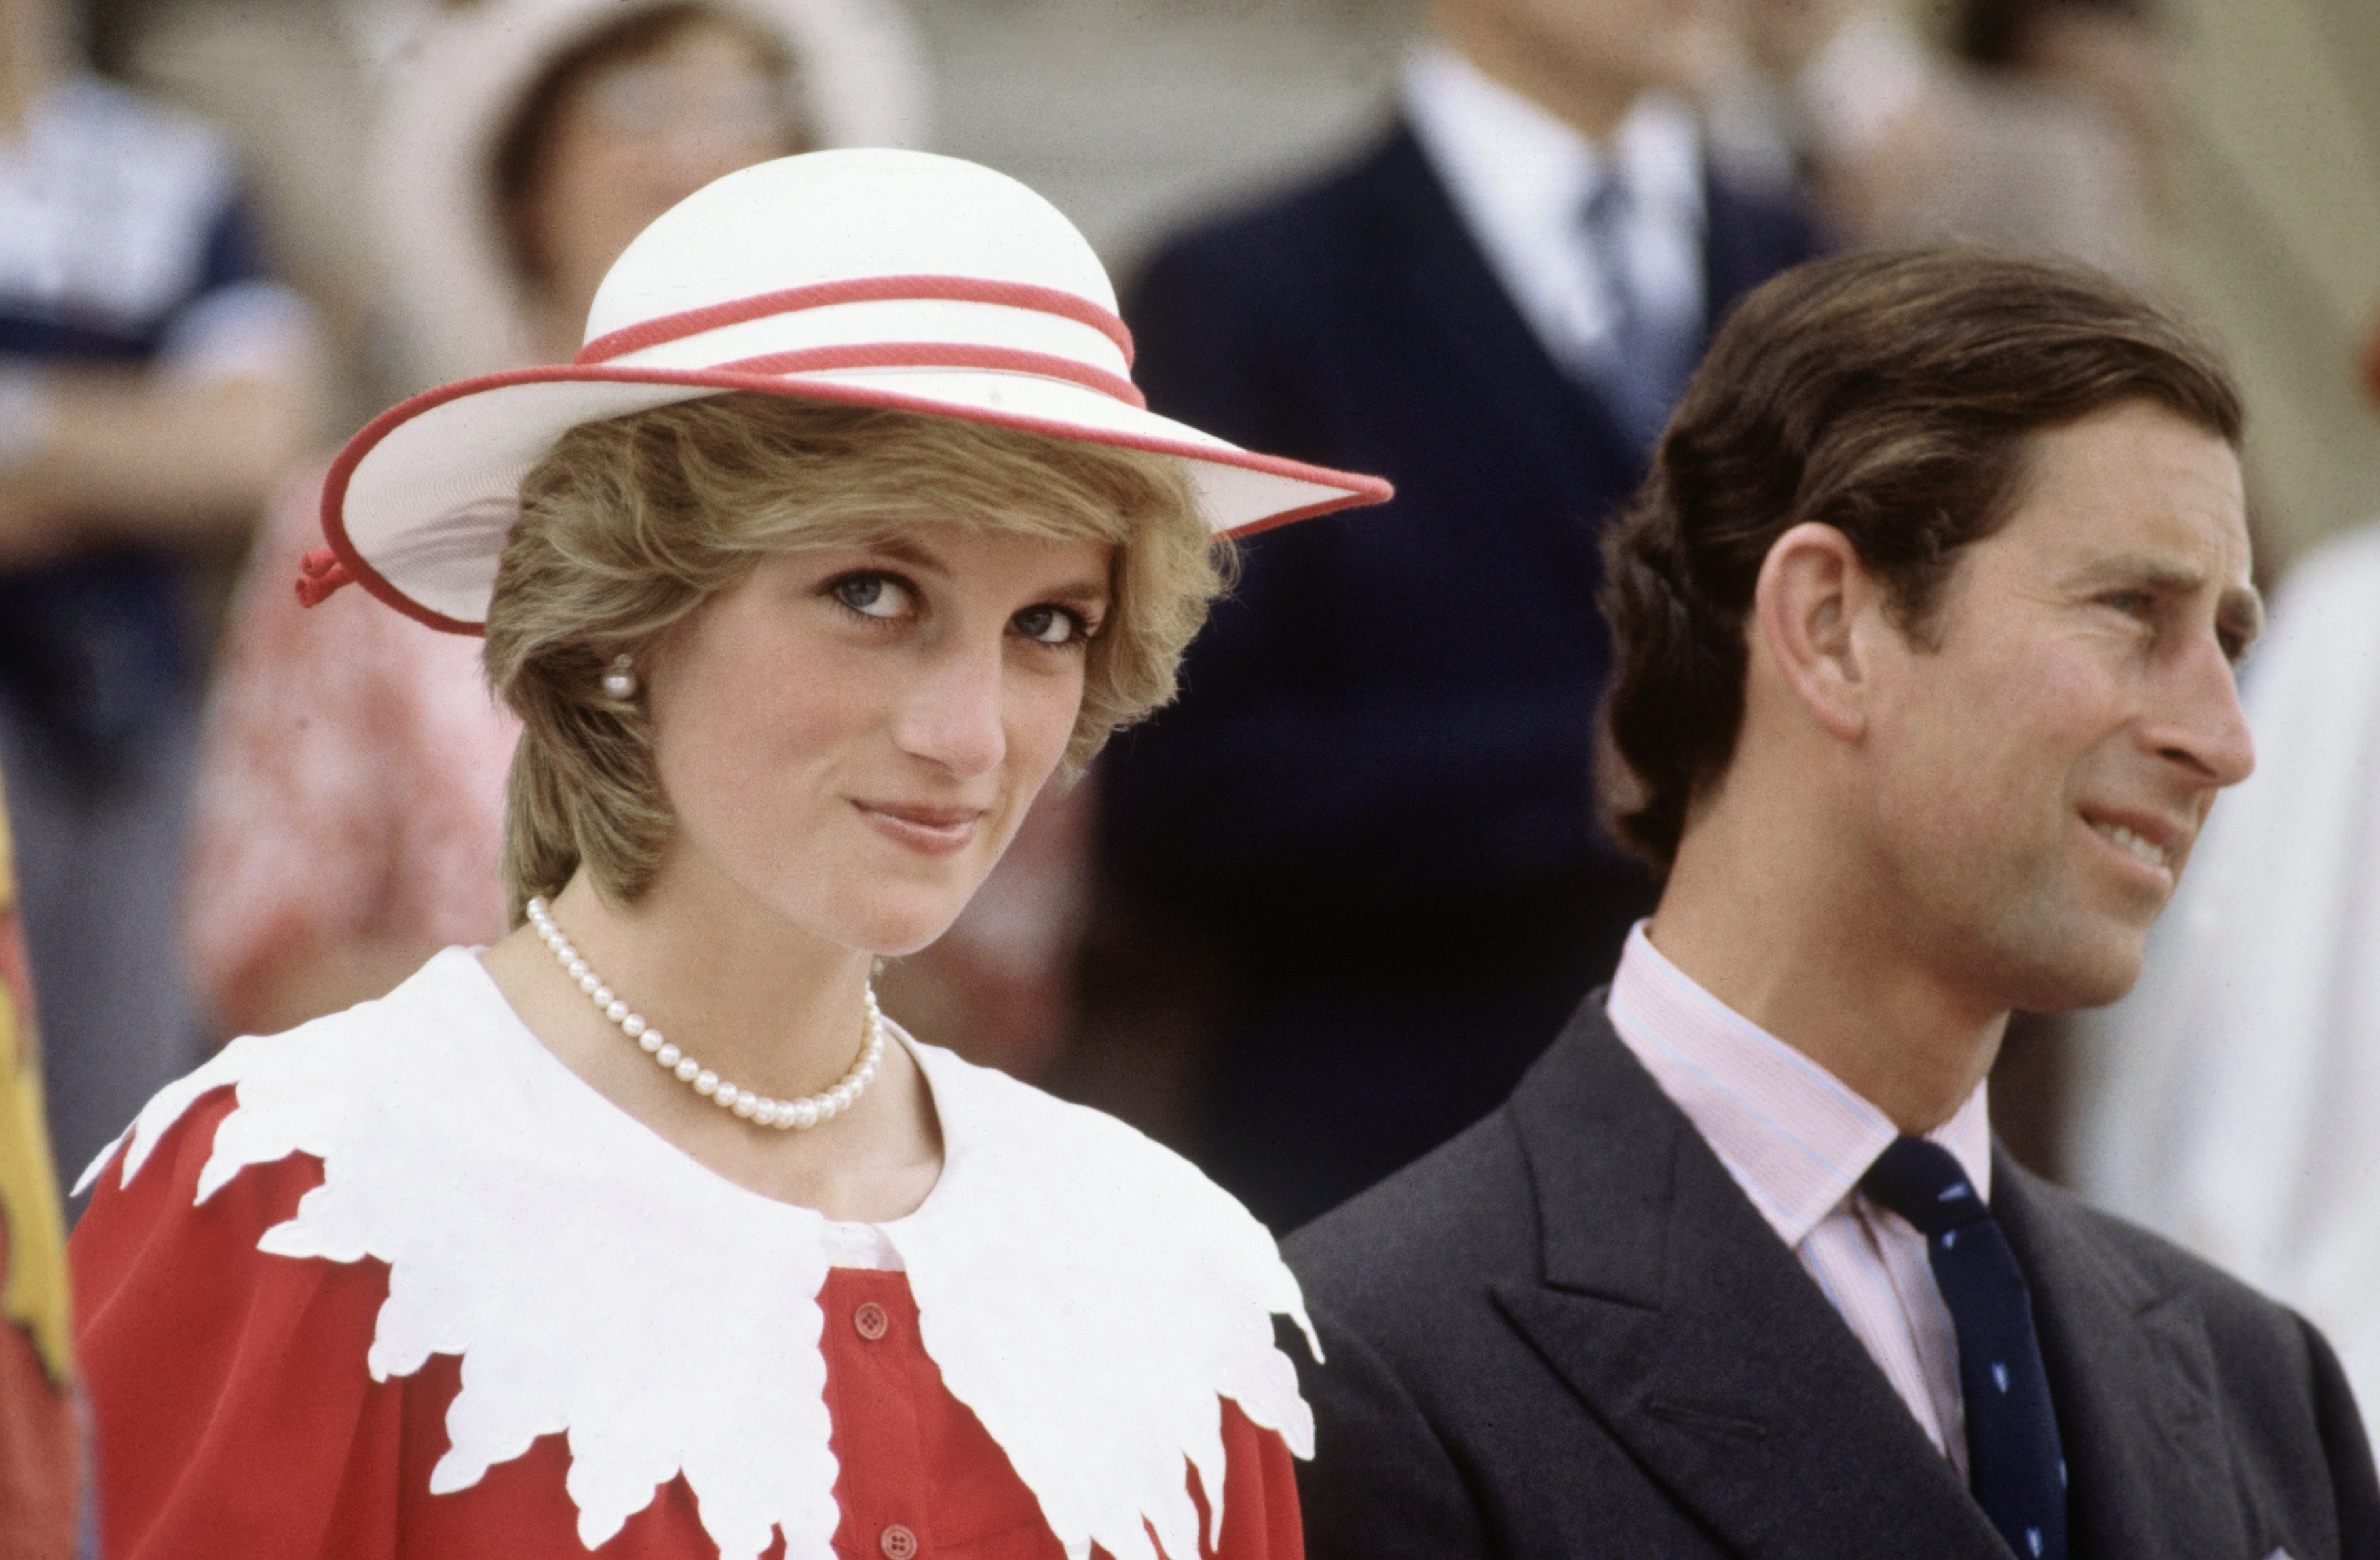 Diana Princess of Wales and Prince Charles during the Royal Tour of Canada on June 29, 1983, in Edmonton, Alberta, Canada. | Source: Getty Images.